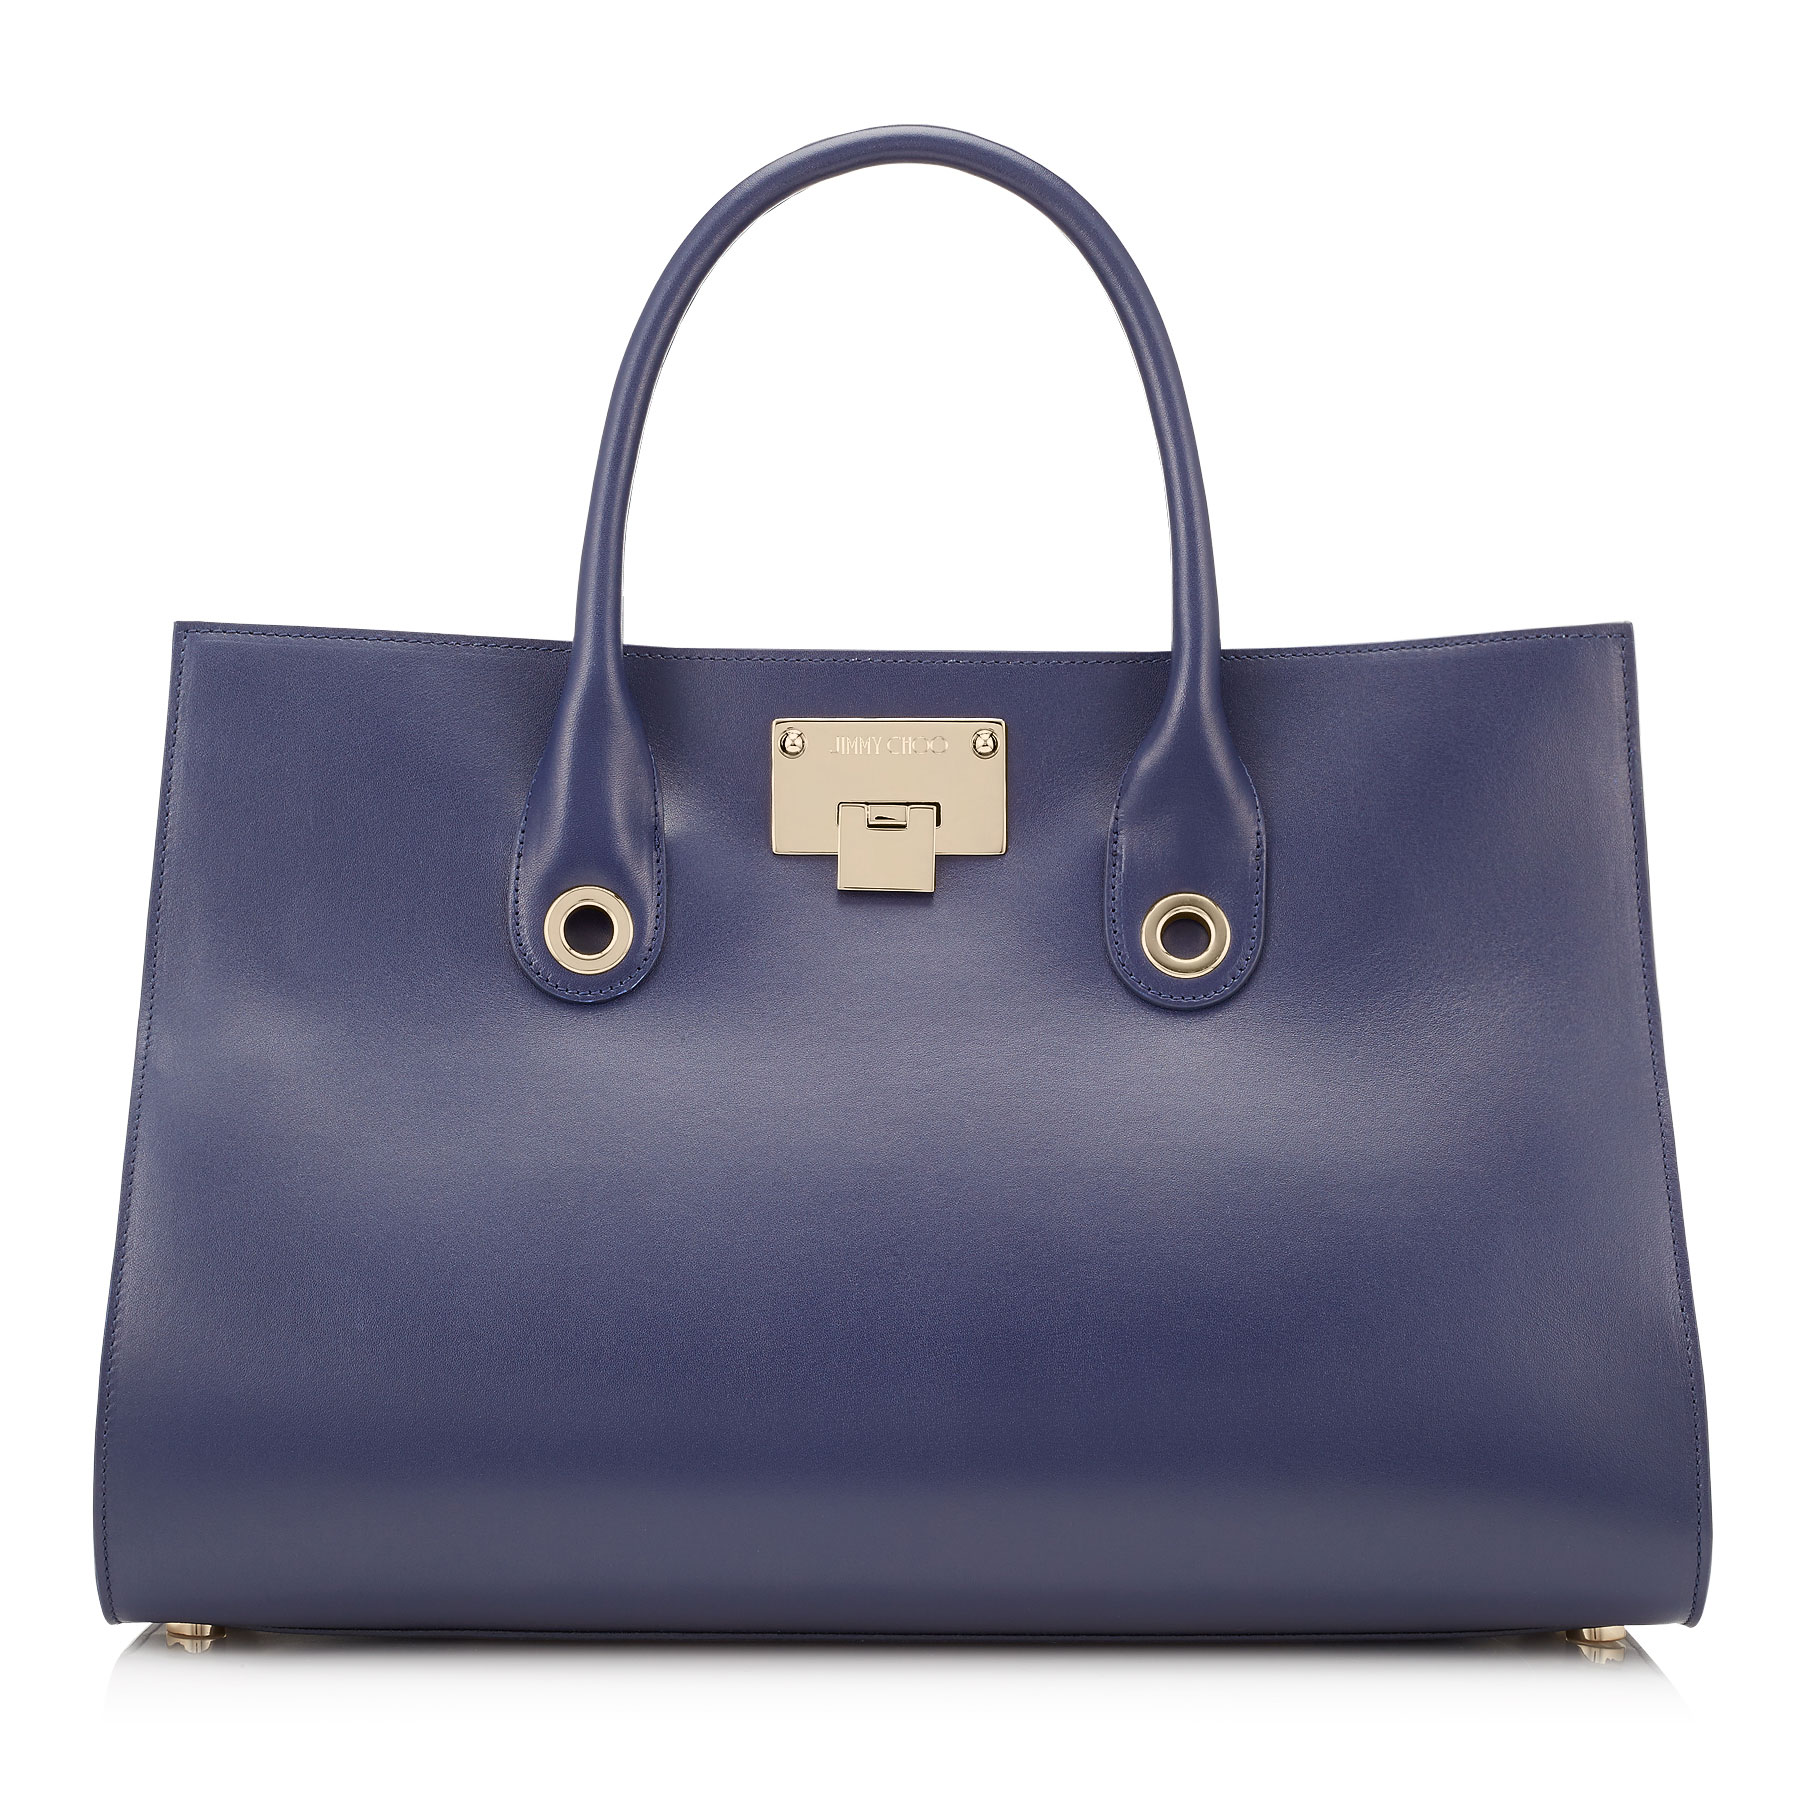 RILEY Navy Smooth Leather with Shimmer Suede Tote Bag